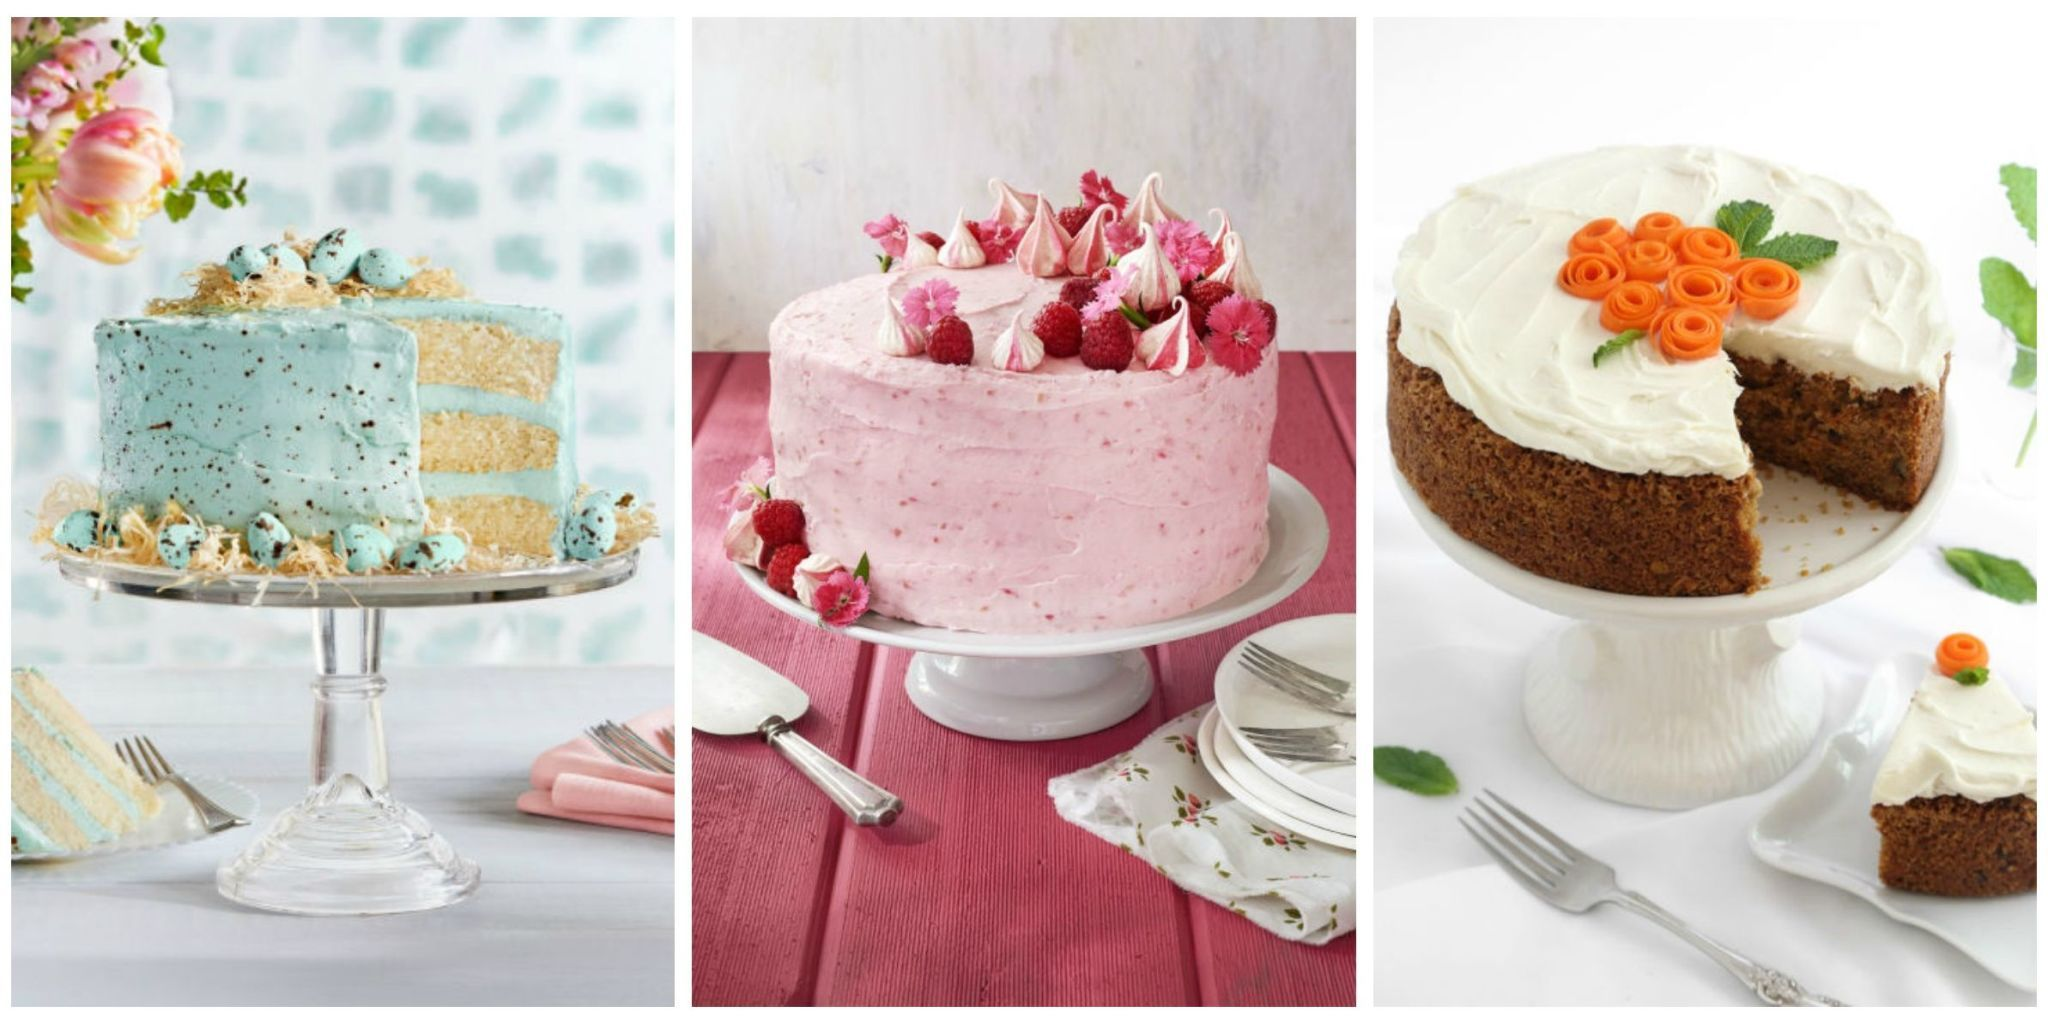 15 Beautiful Cake Decorating Ideas   How to Decorate a Pretty Cake Turn a basic cake into a treat worthy of a celebration with some  buttercream frosting and a few creative details  Plus  try our best cake  recipes ever